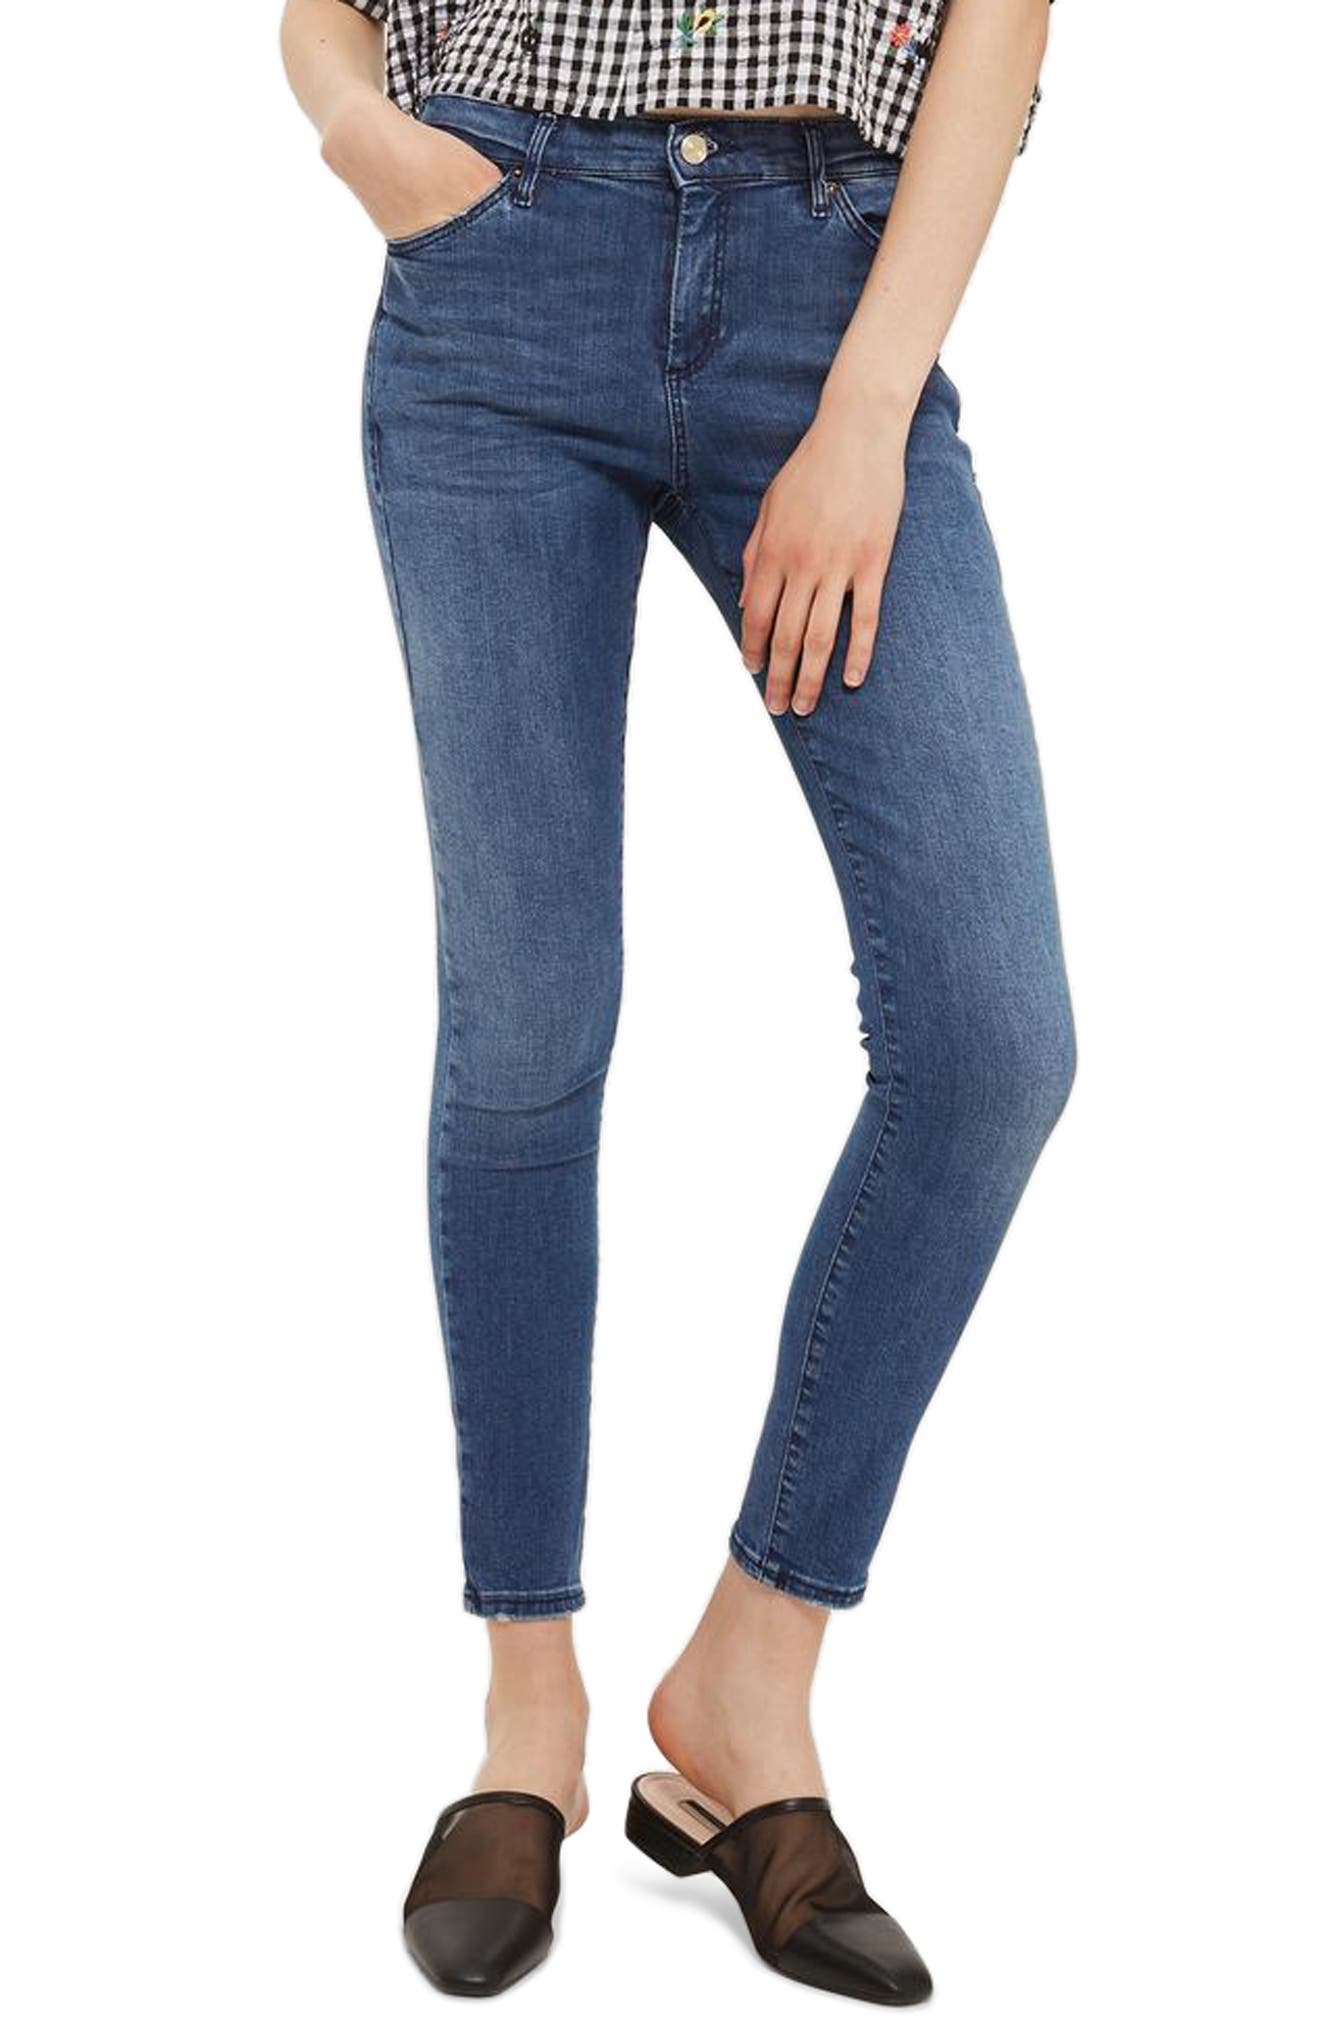 Sidney Skinny Ankle Jeans,                             Main thumbnail 1, color,                             400